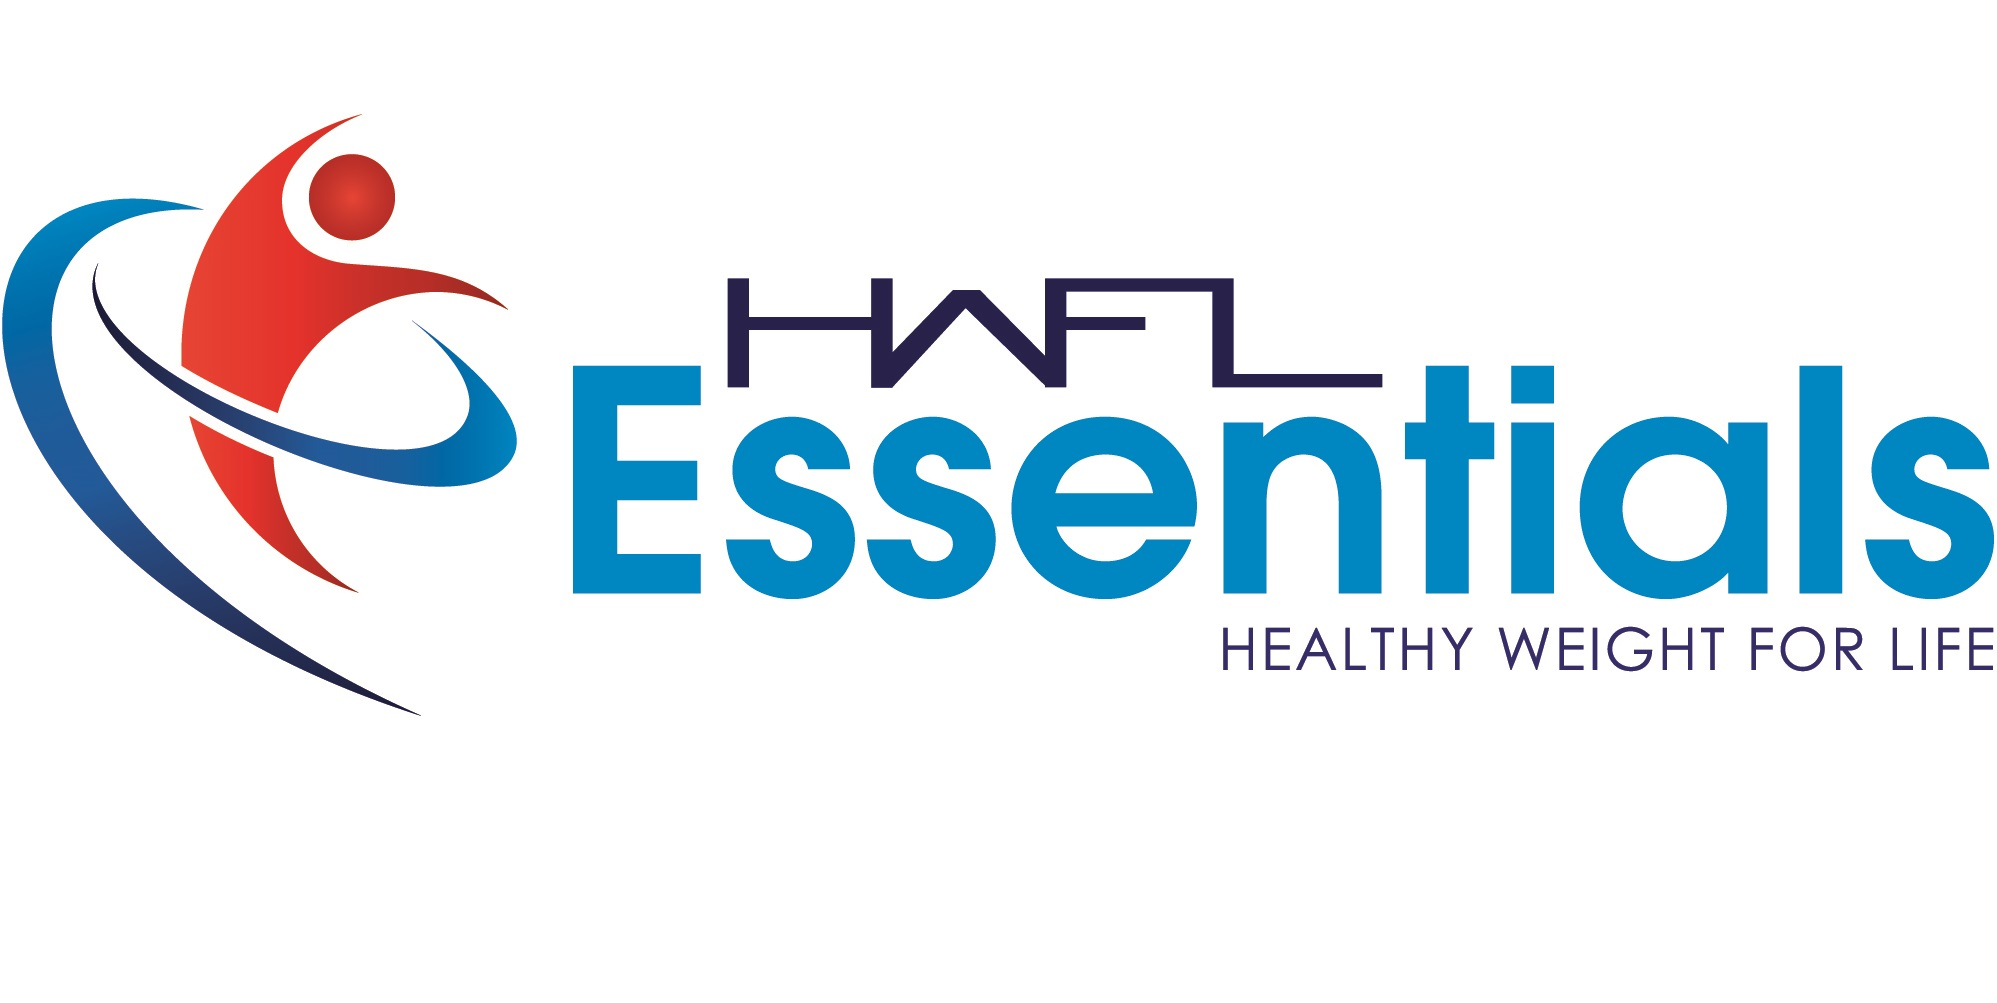 HWFL Essentials Logo CMYK